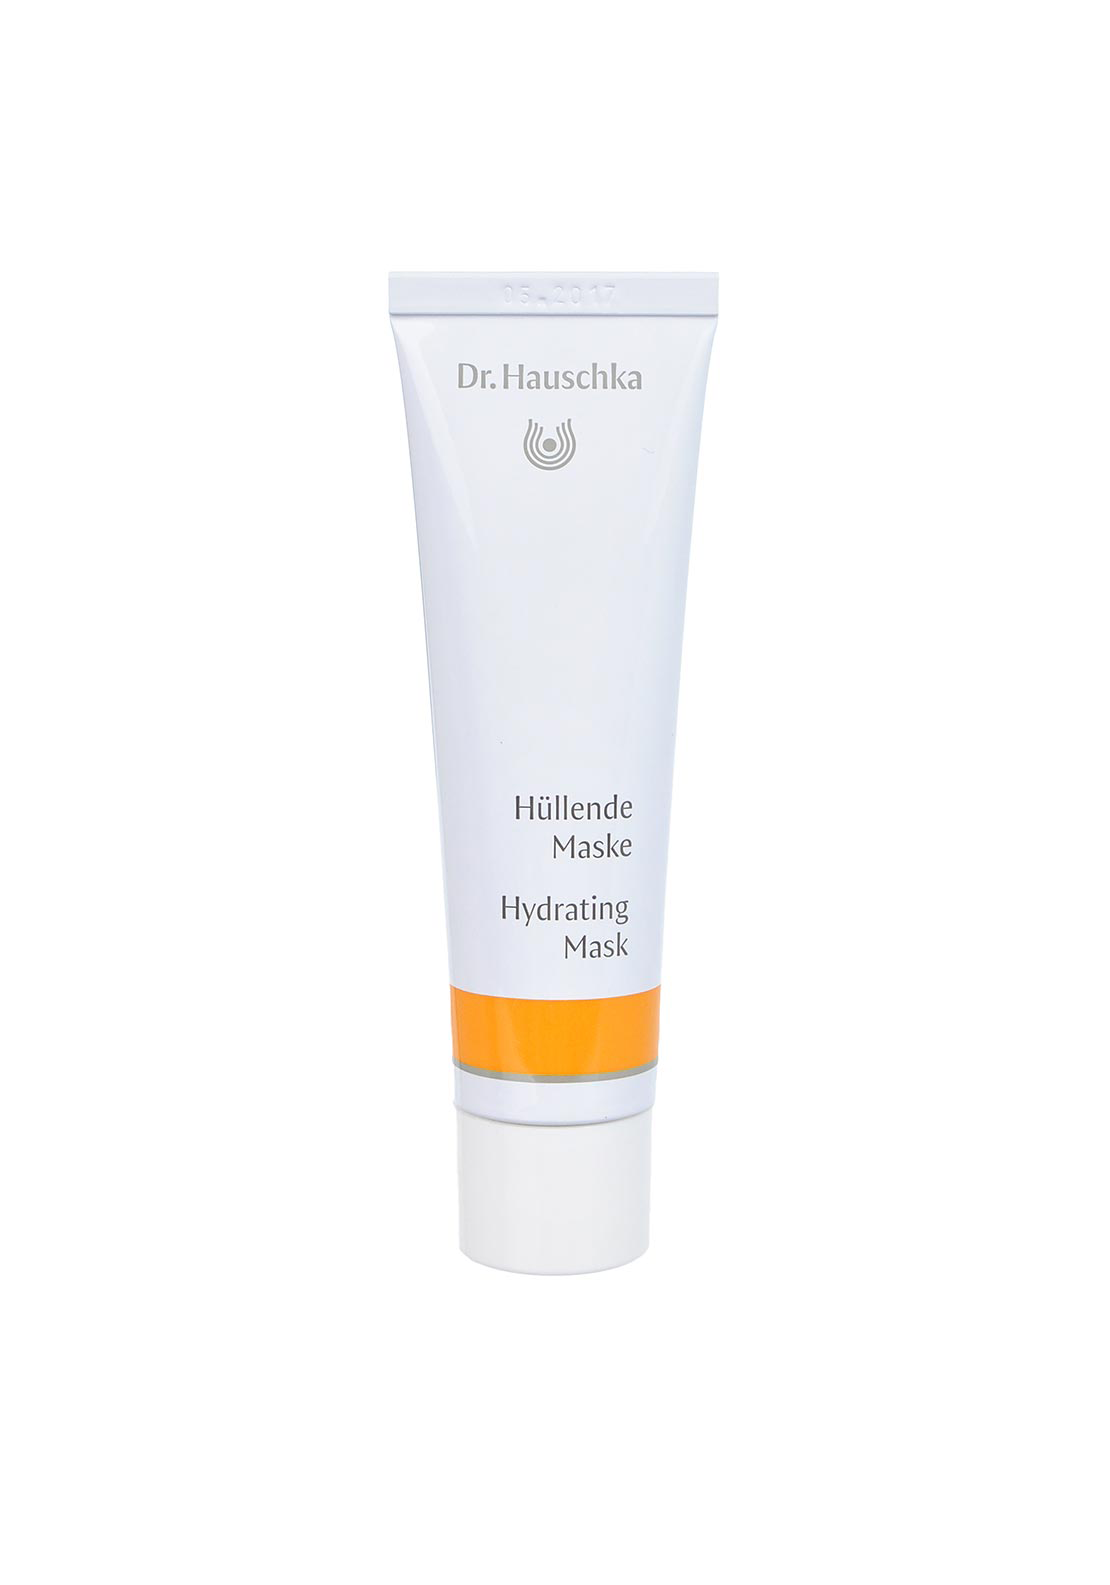 Dr. Hauschka Hydrating Mask, 30ml